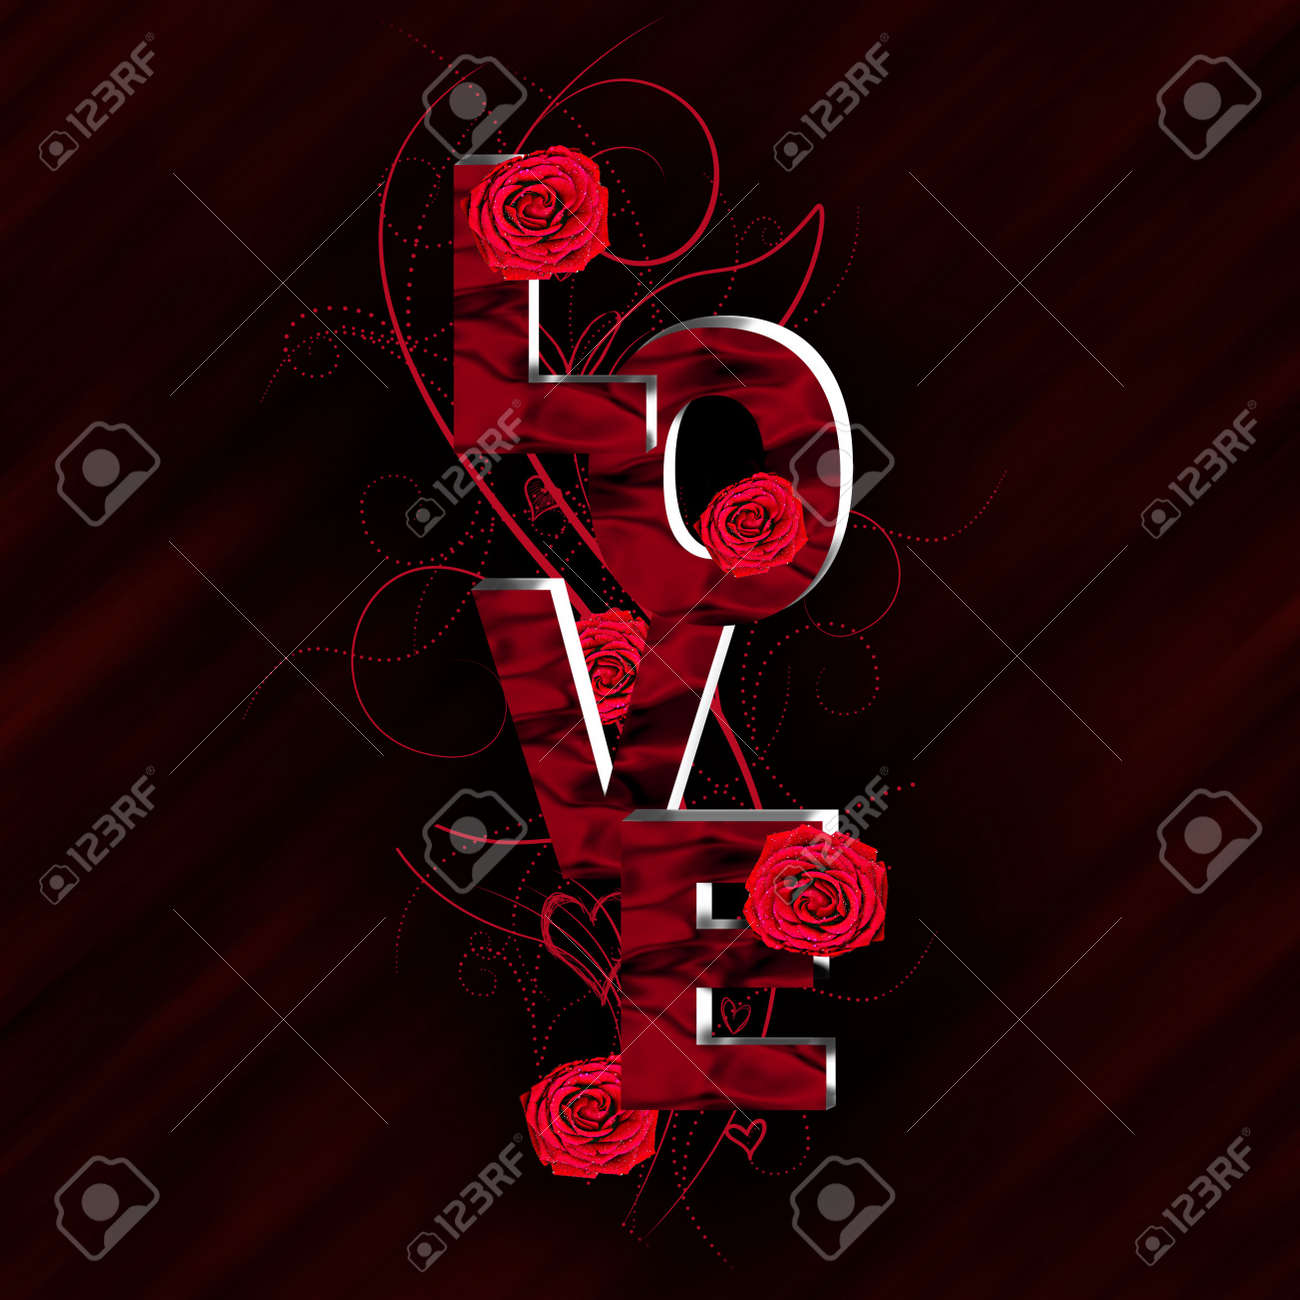 3D Love text composition Stock Photo - 16816566